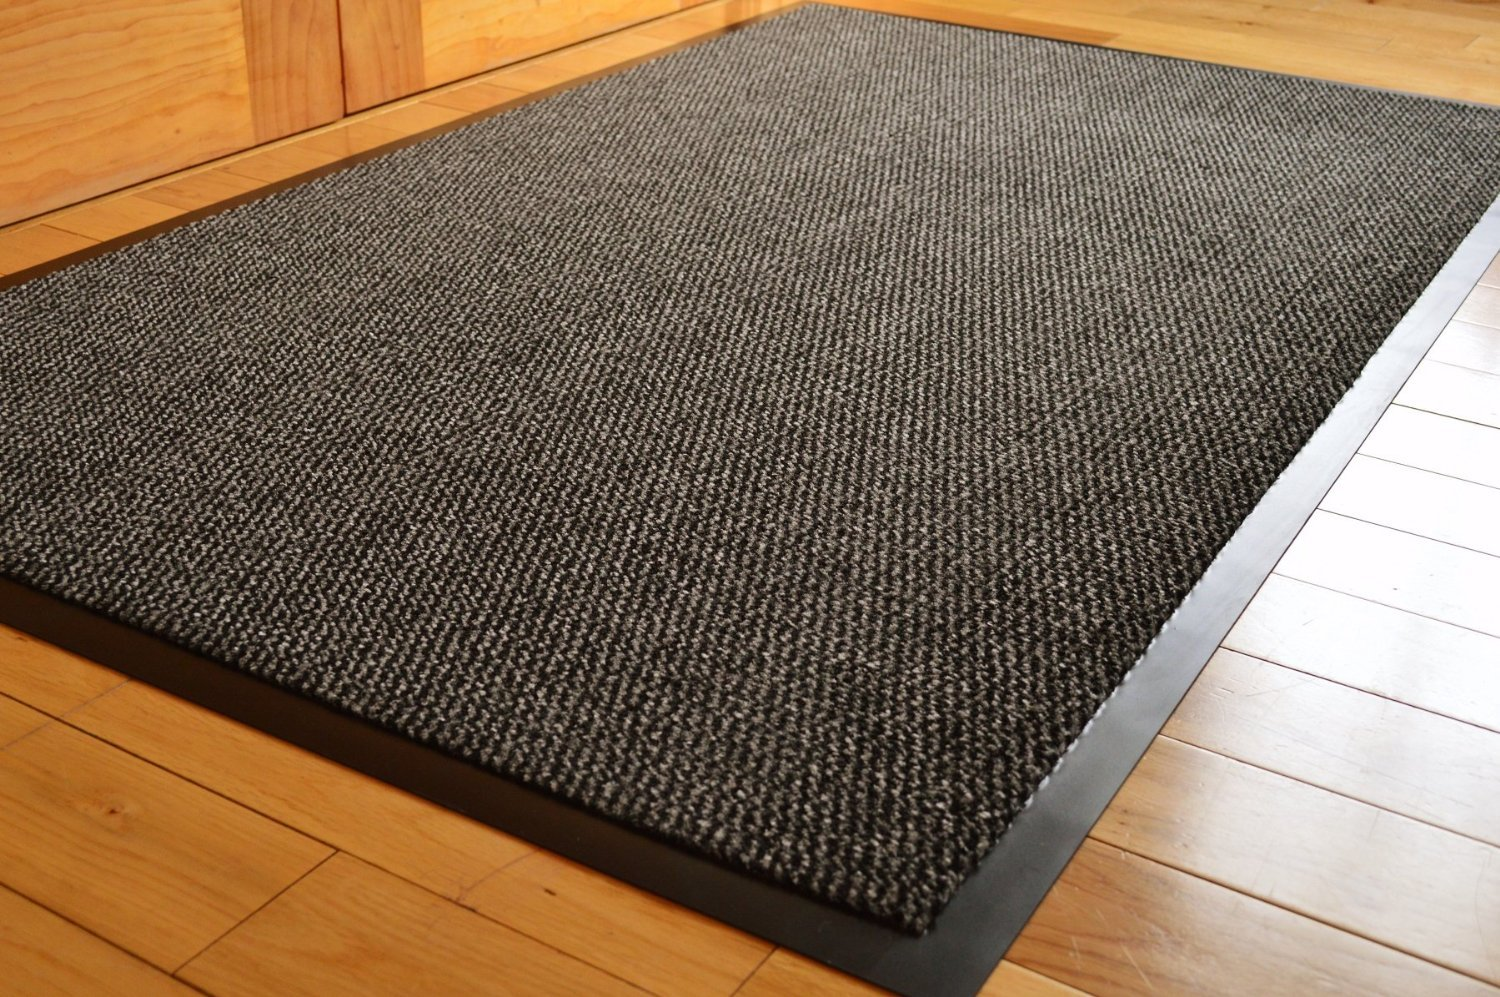 com flooring mat water bungalow doors ip indoor outdoor guard walmart door mats cordova